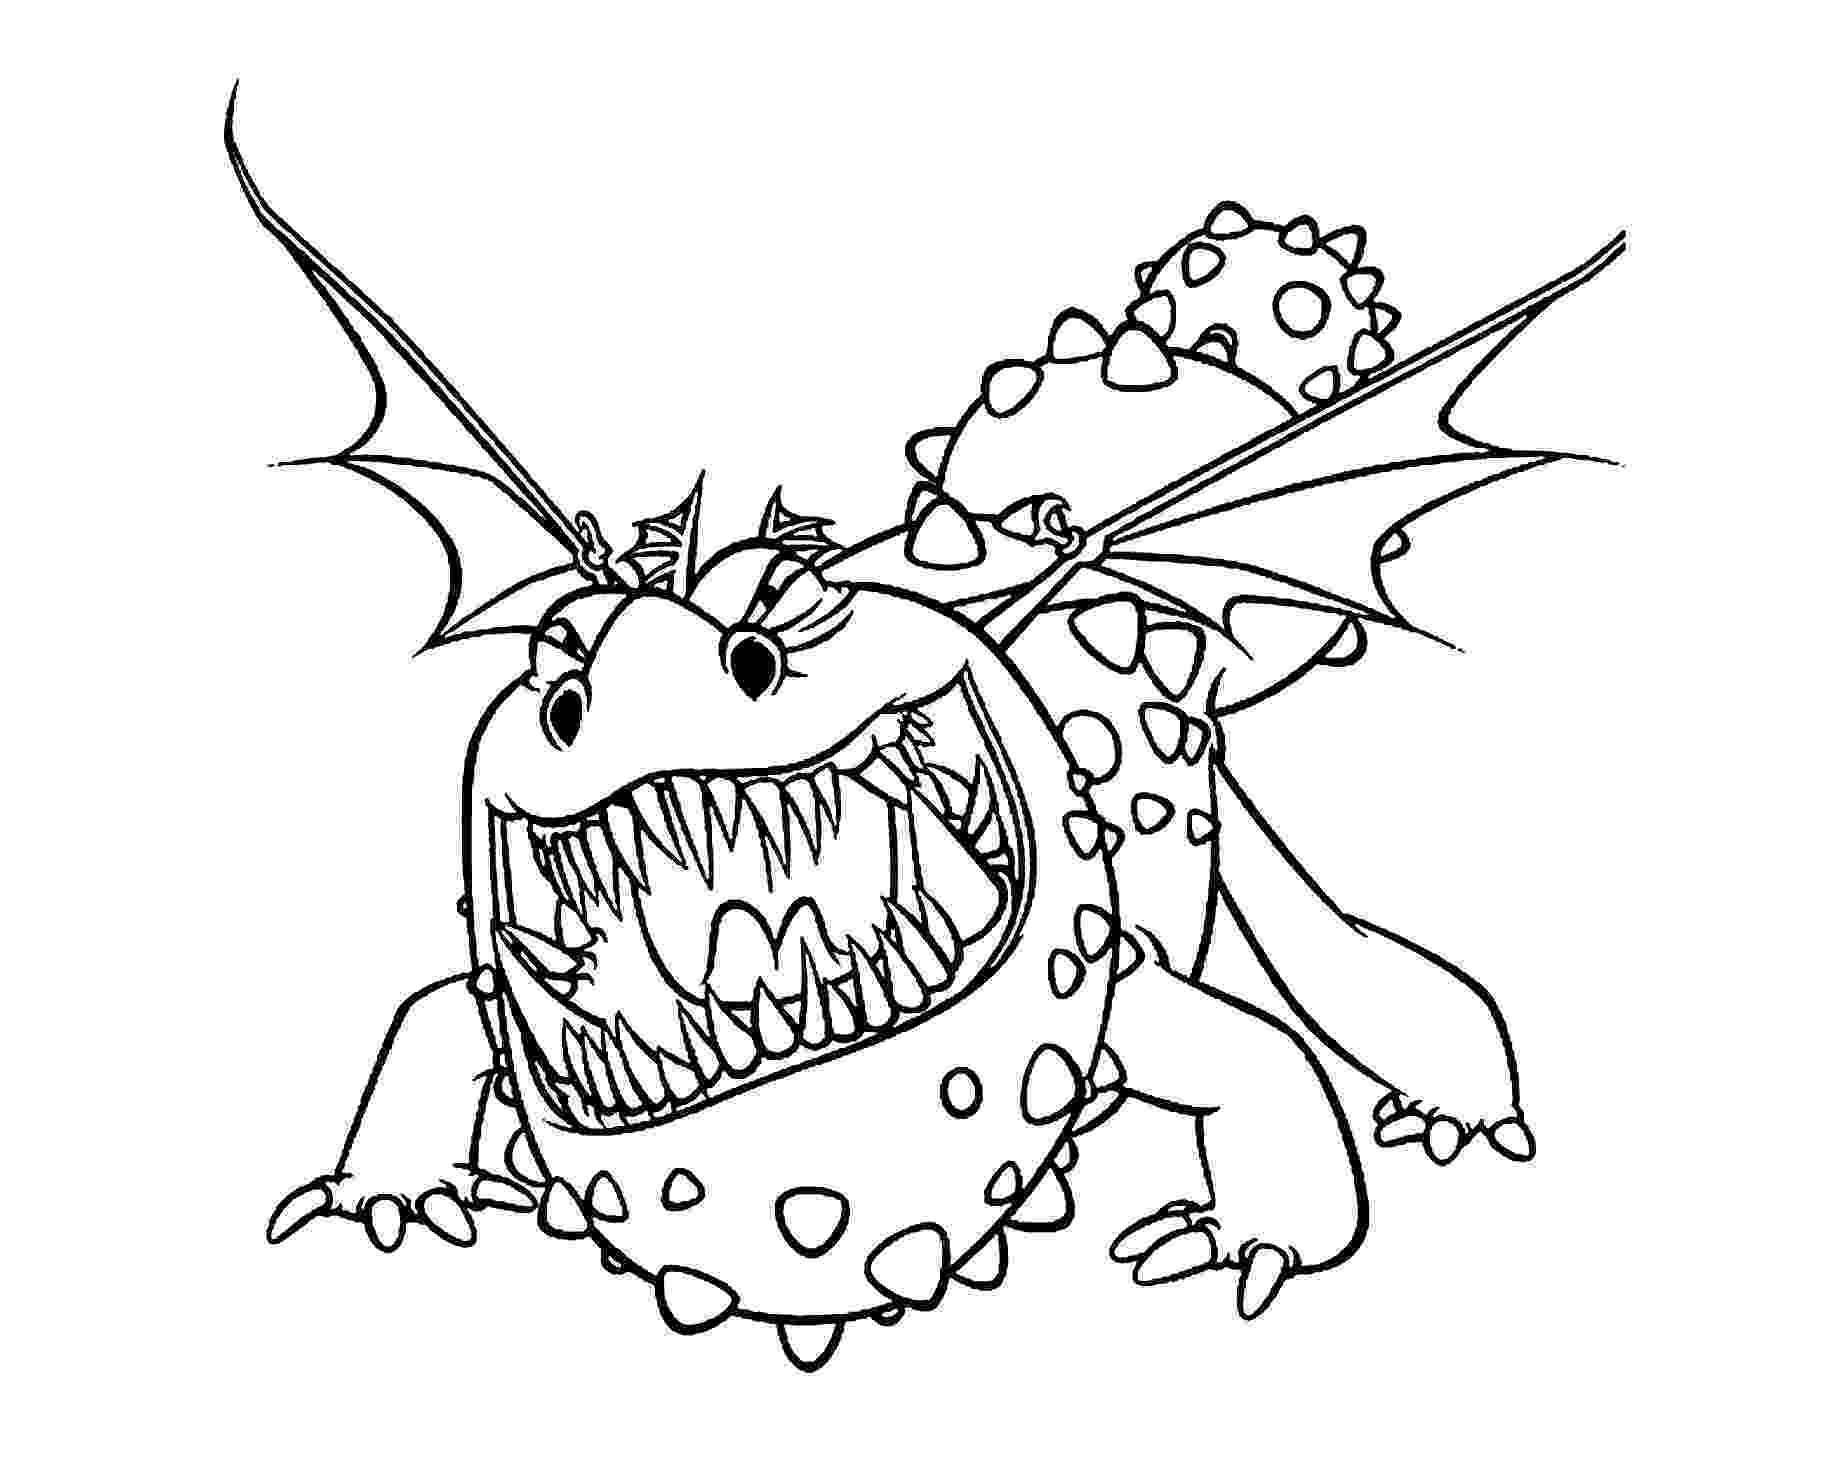 how to train your dragon coloring pages toothless toothless coloring pages coloring pages to download and how your coloring train toothless dragon pages to